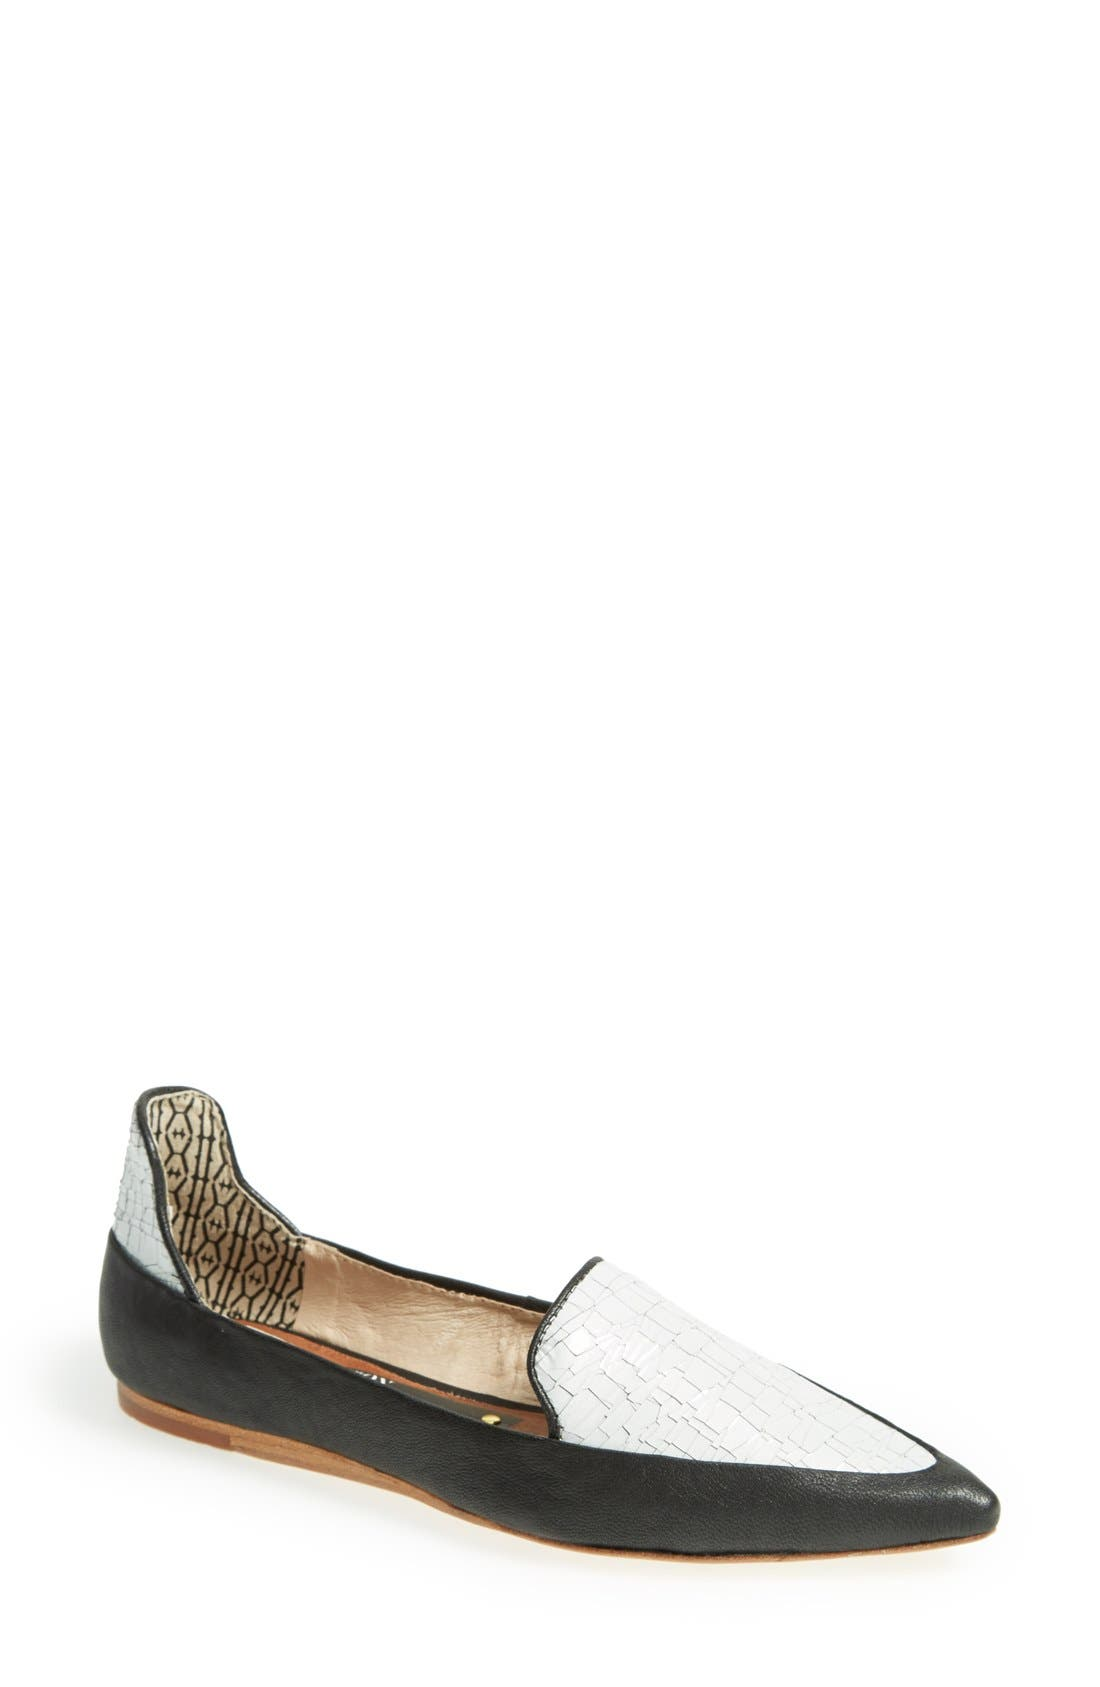 Alternate Image 1 Selected - Matt Bernson 'Verona' Leather Loafer (Women)